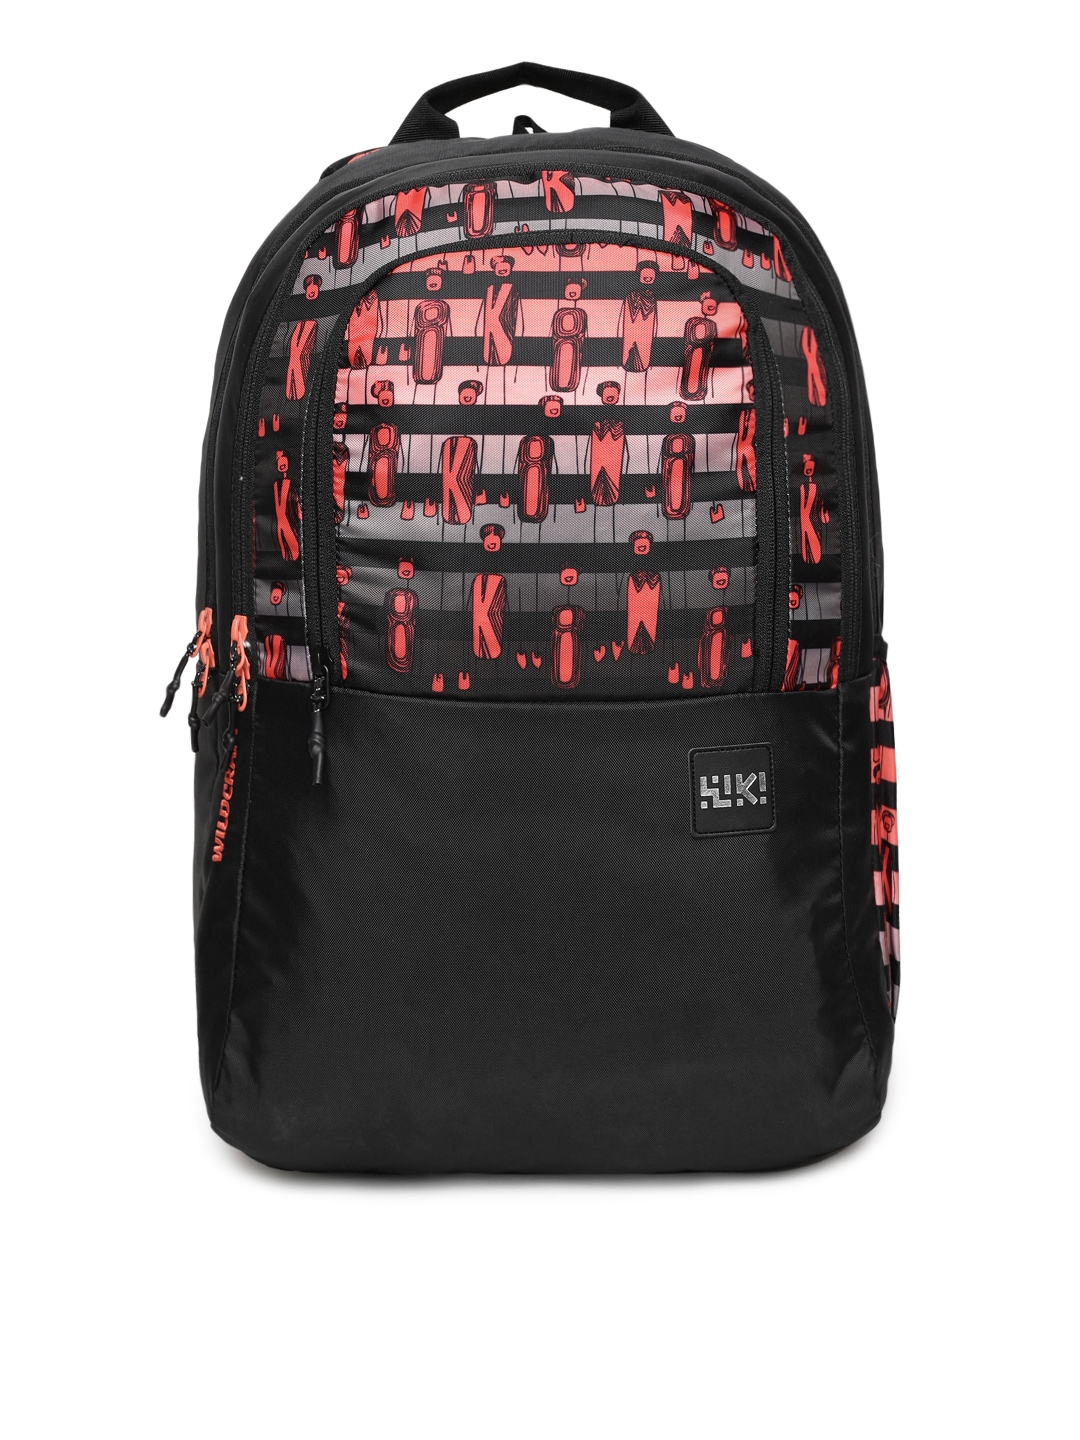 e749caf9cb Laptop Bags Backpacks - Buy Laptop Bags Backpacks online in India